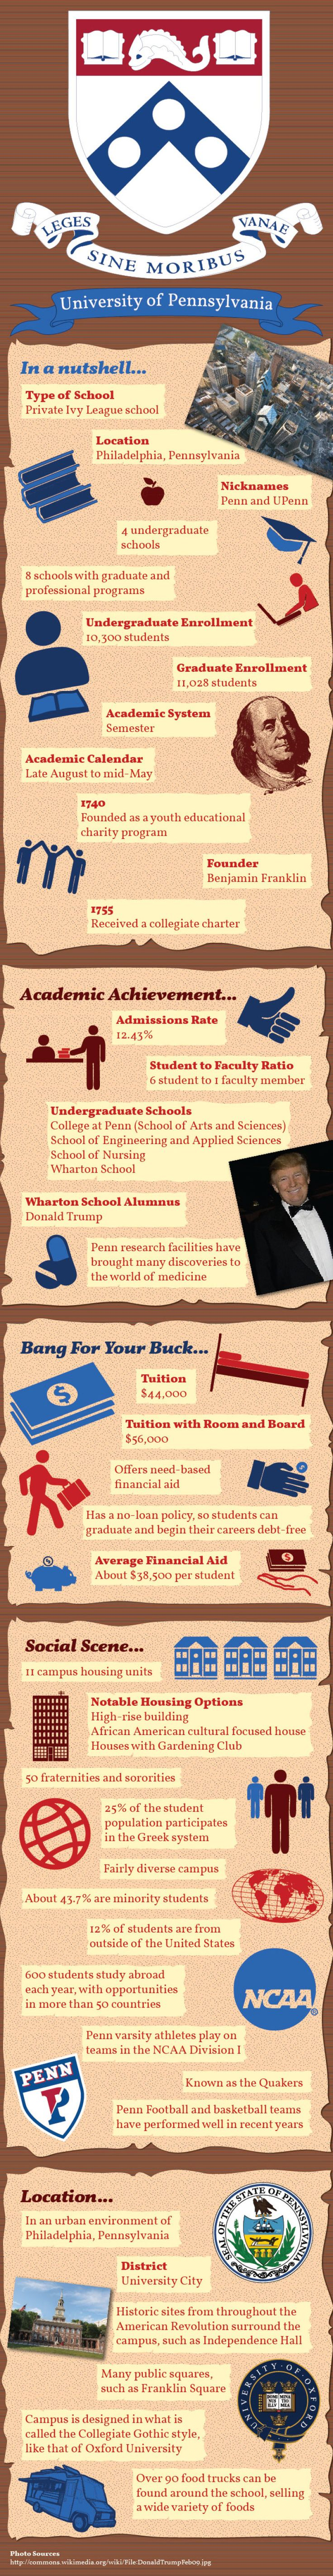 17 best ideas about pennsylvania university penn university of pennsylvania upenn infographic